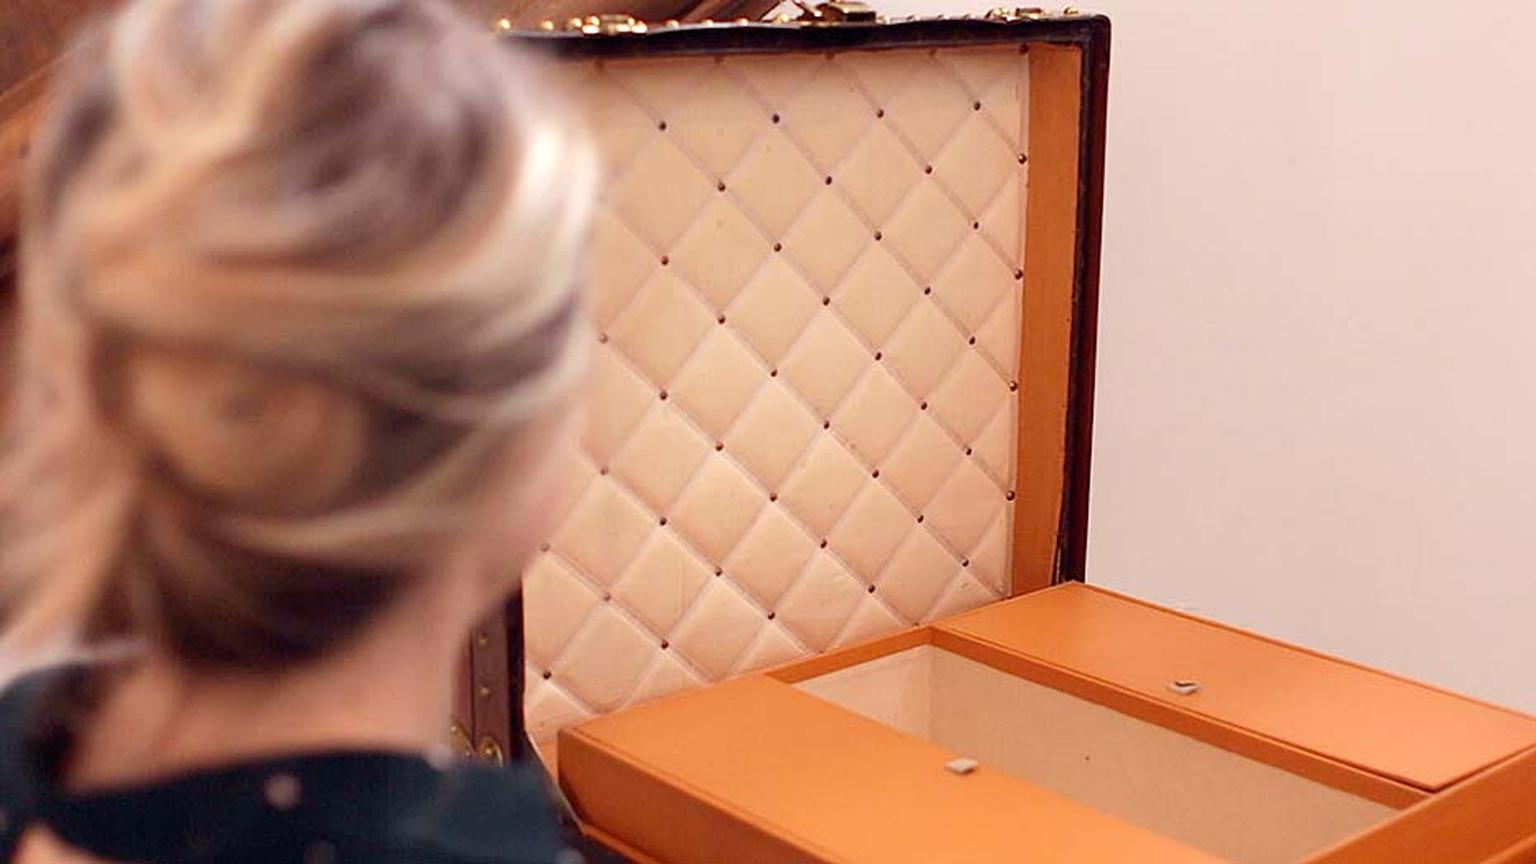 Louis Vuitton watches video_steamer trunk interior.jpg